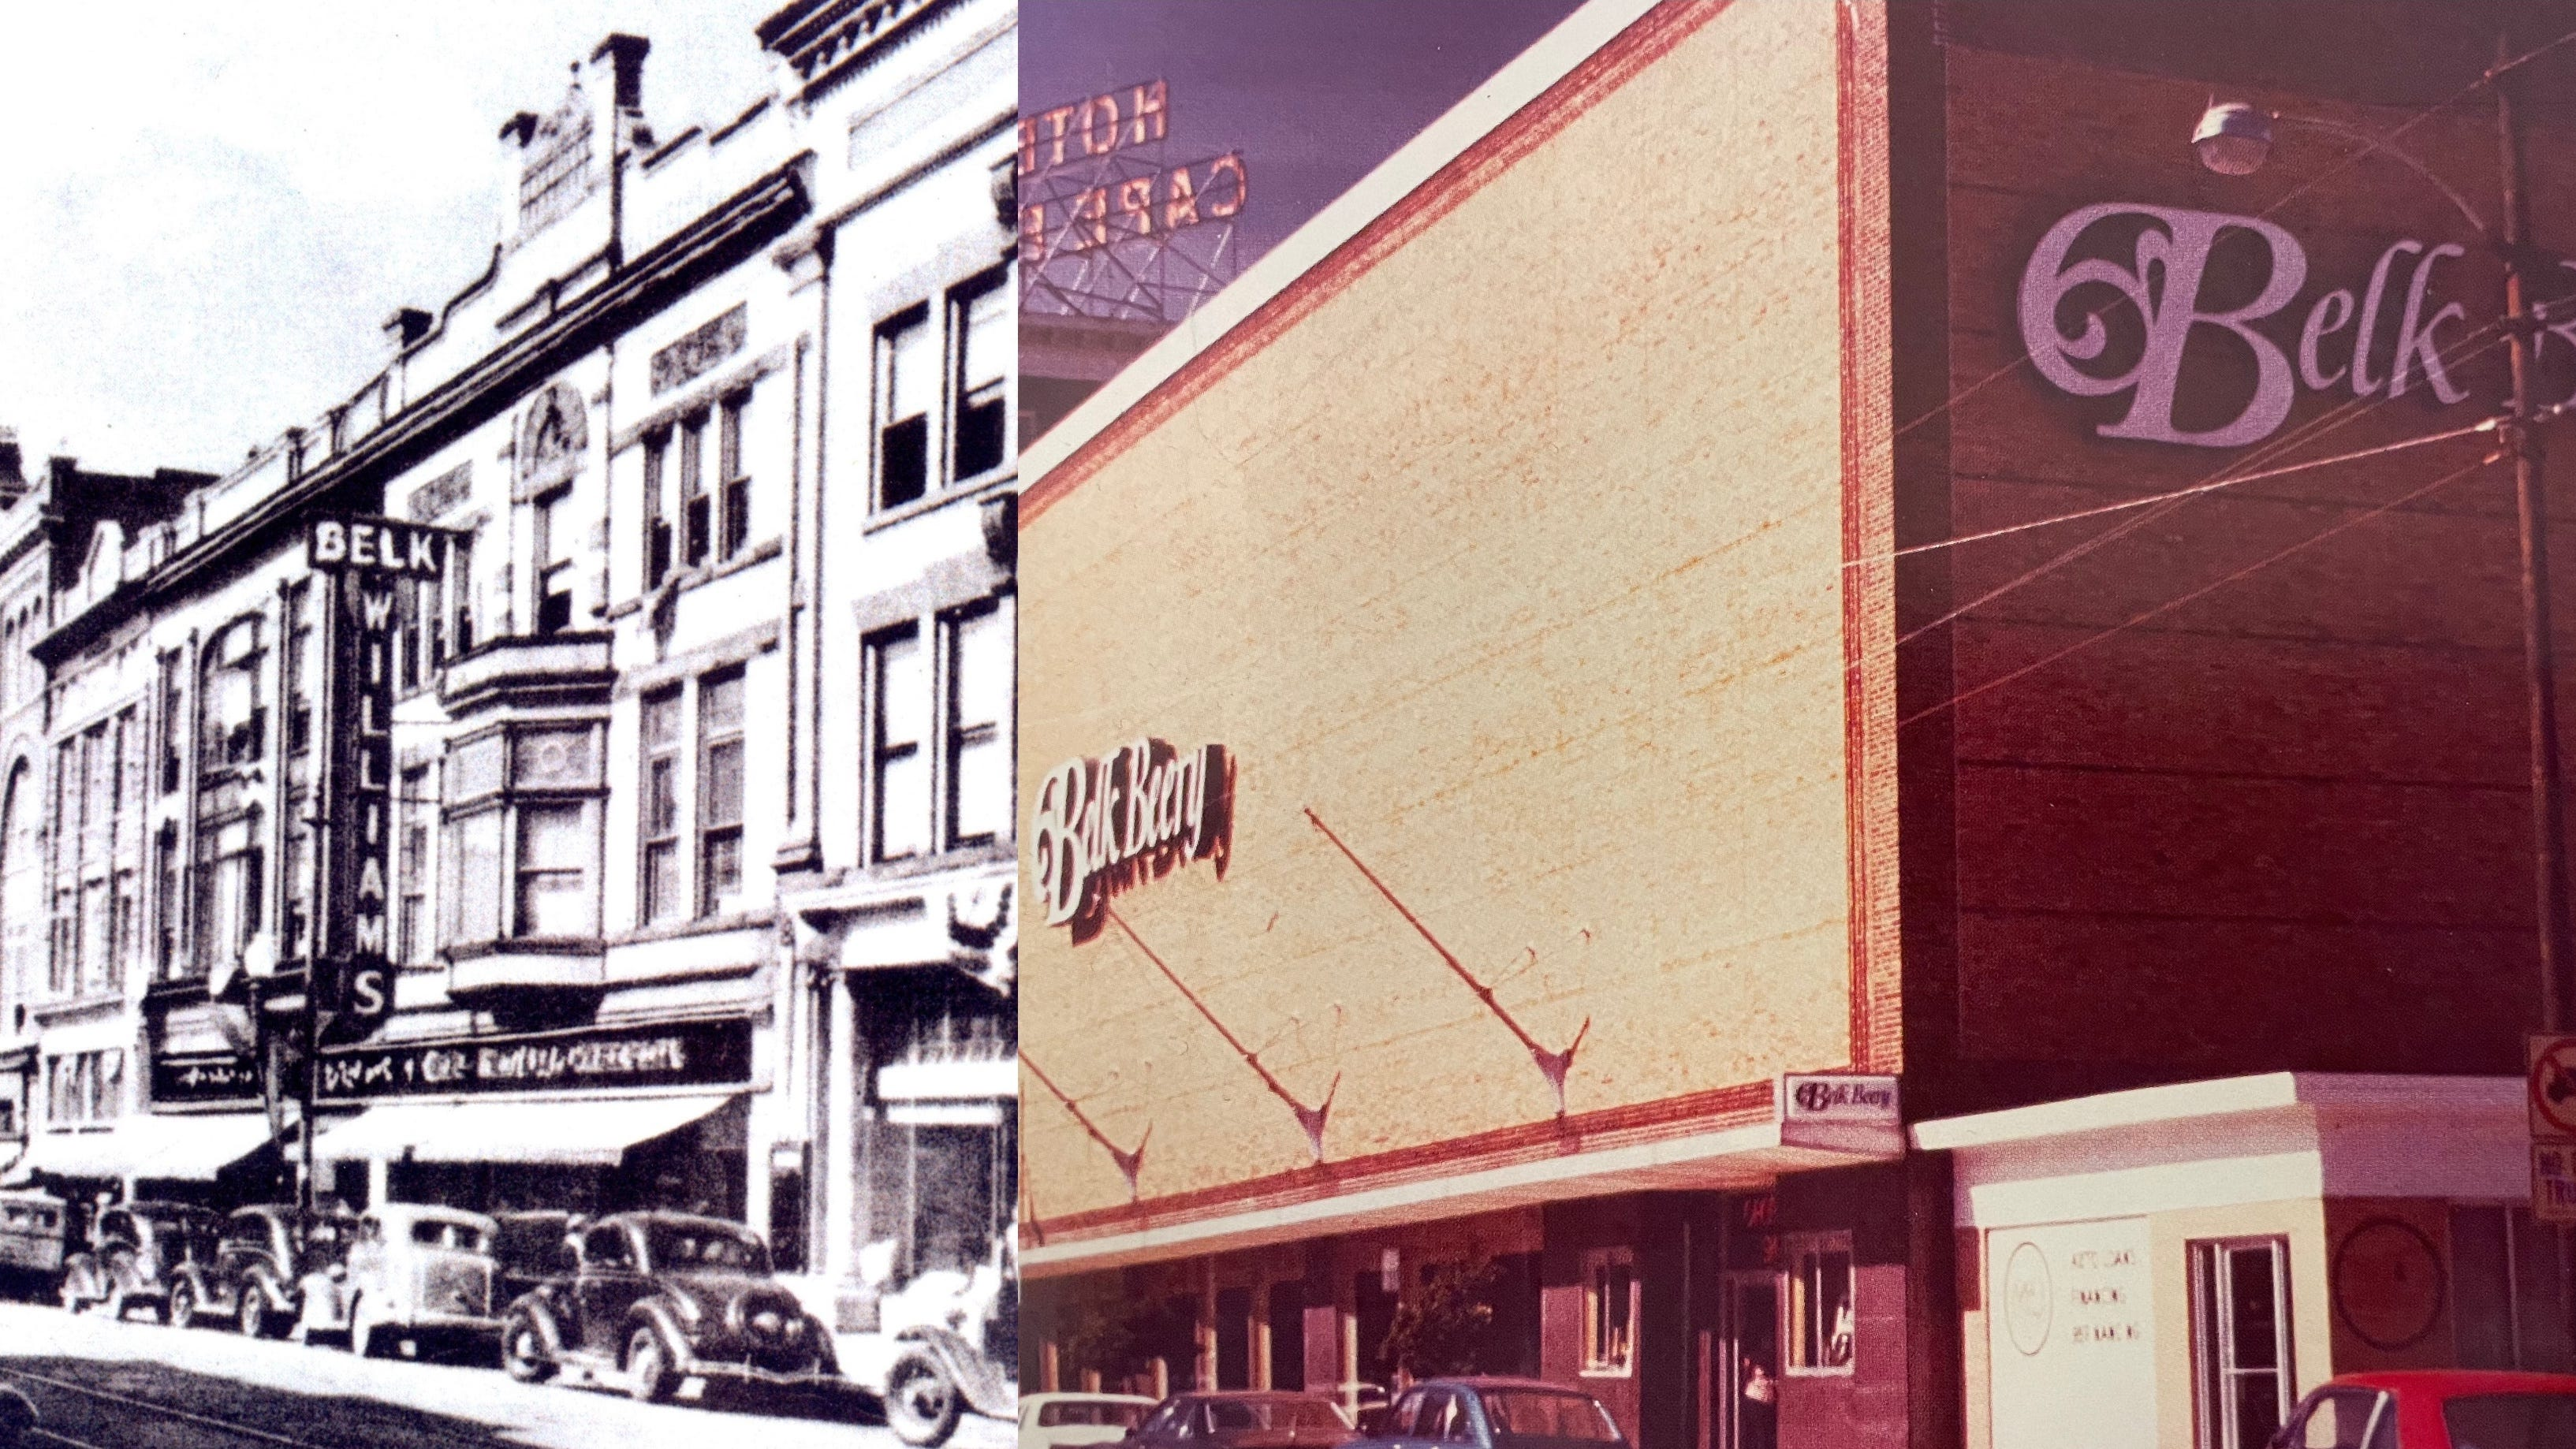 The Belk-Williams store on North Front Street in the early 1900s and the Belk-Beery Building on Chestnut Street were two of the defining department stores in downtown Wilmington.